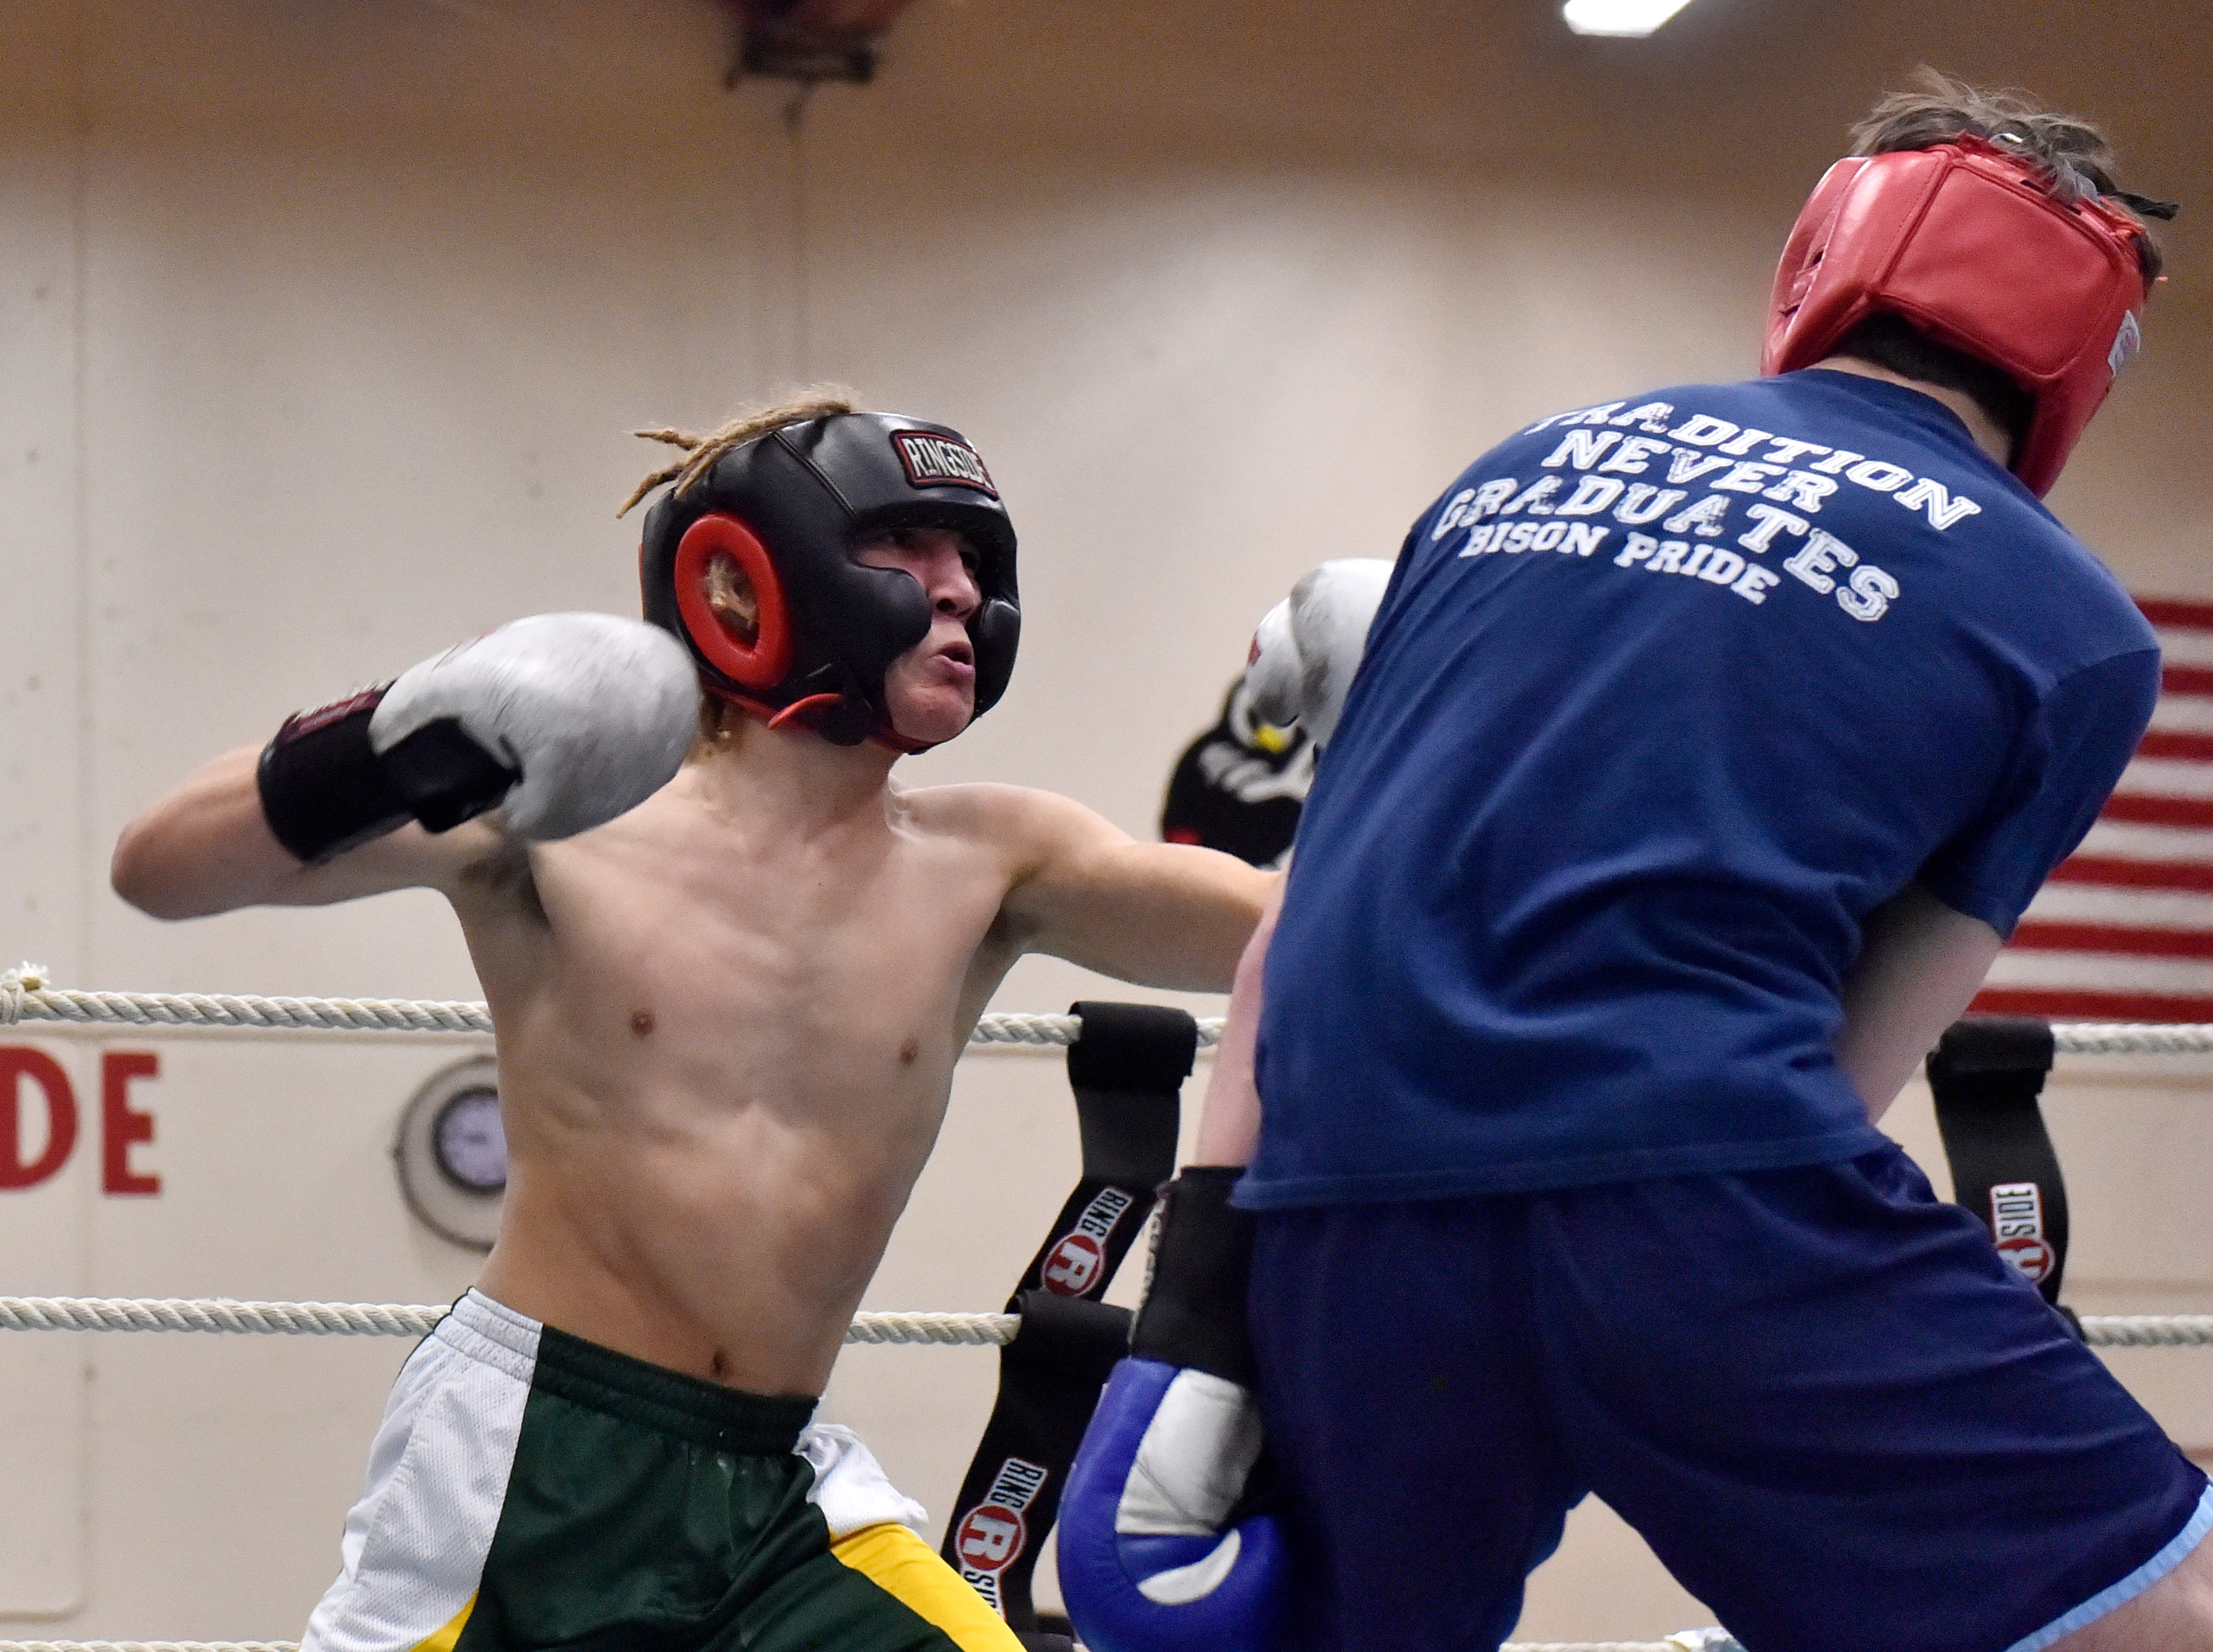 CMR's Logan Richard and Great Falls High's Braiden Lomas fight in the 2019 Crosstown Rumble on Friday night at Paris Gibson Education Center.